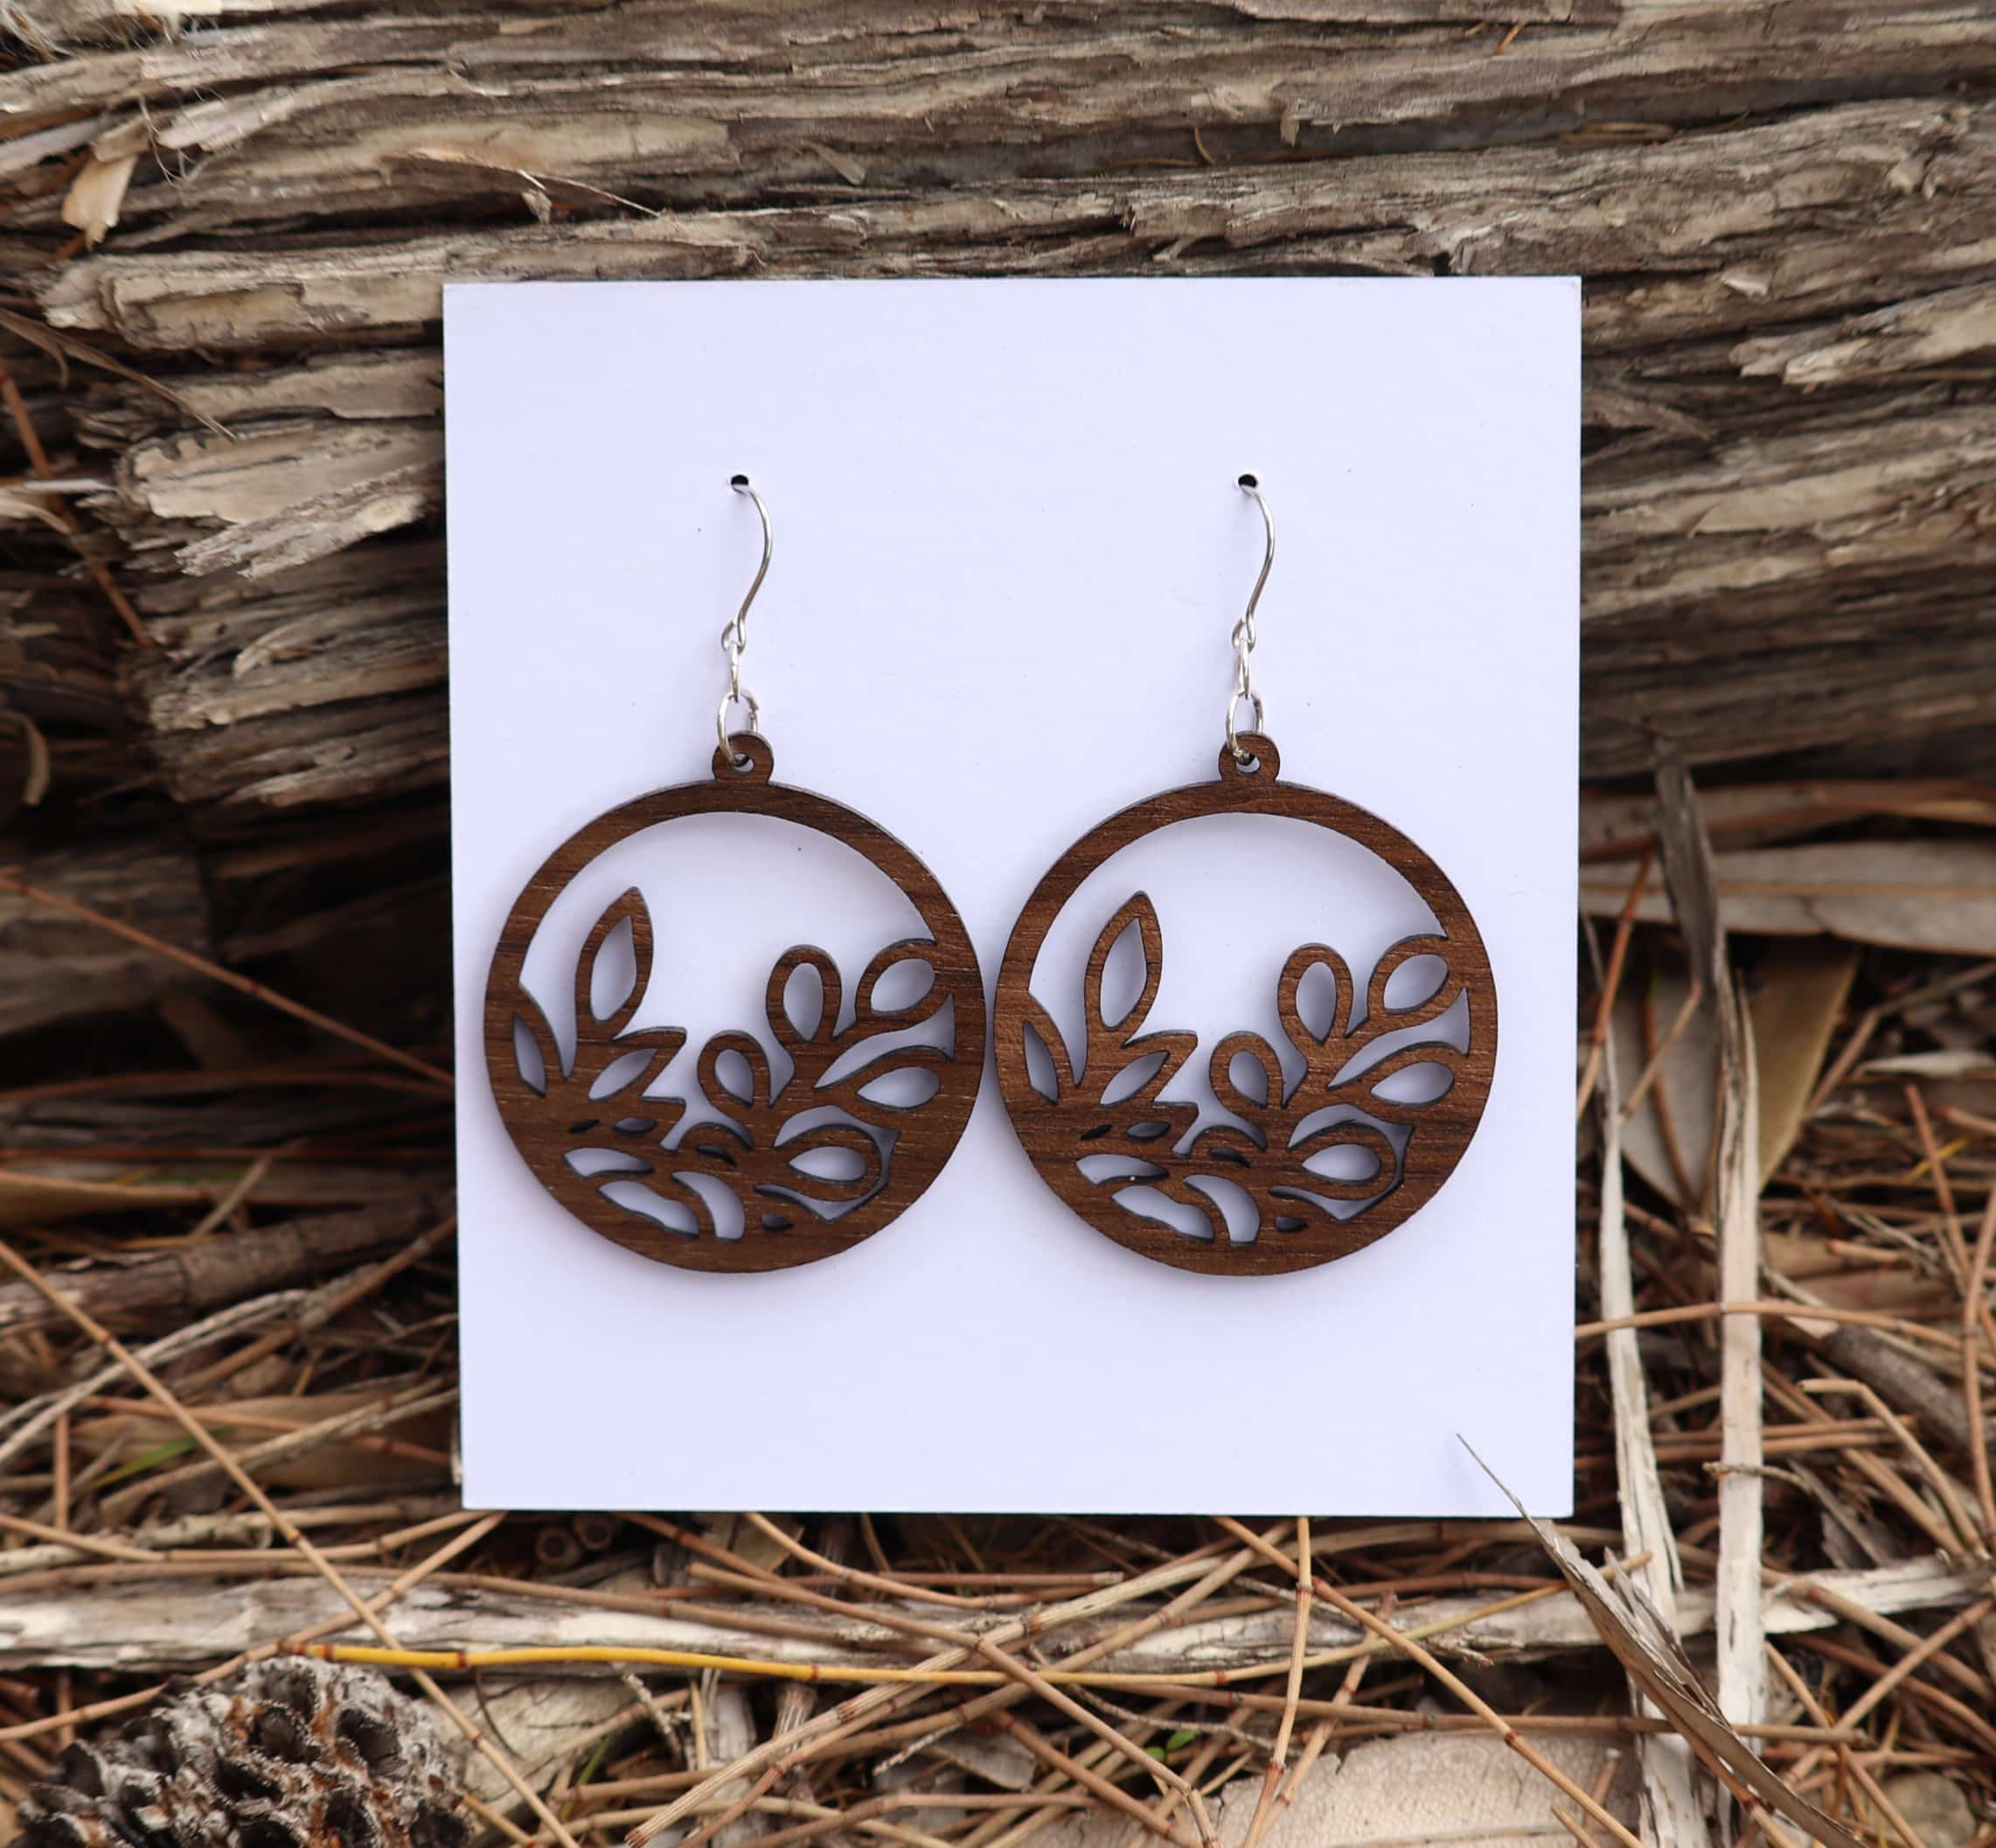 Round wooden queensland walnut earrings with intricate leaf pattern.